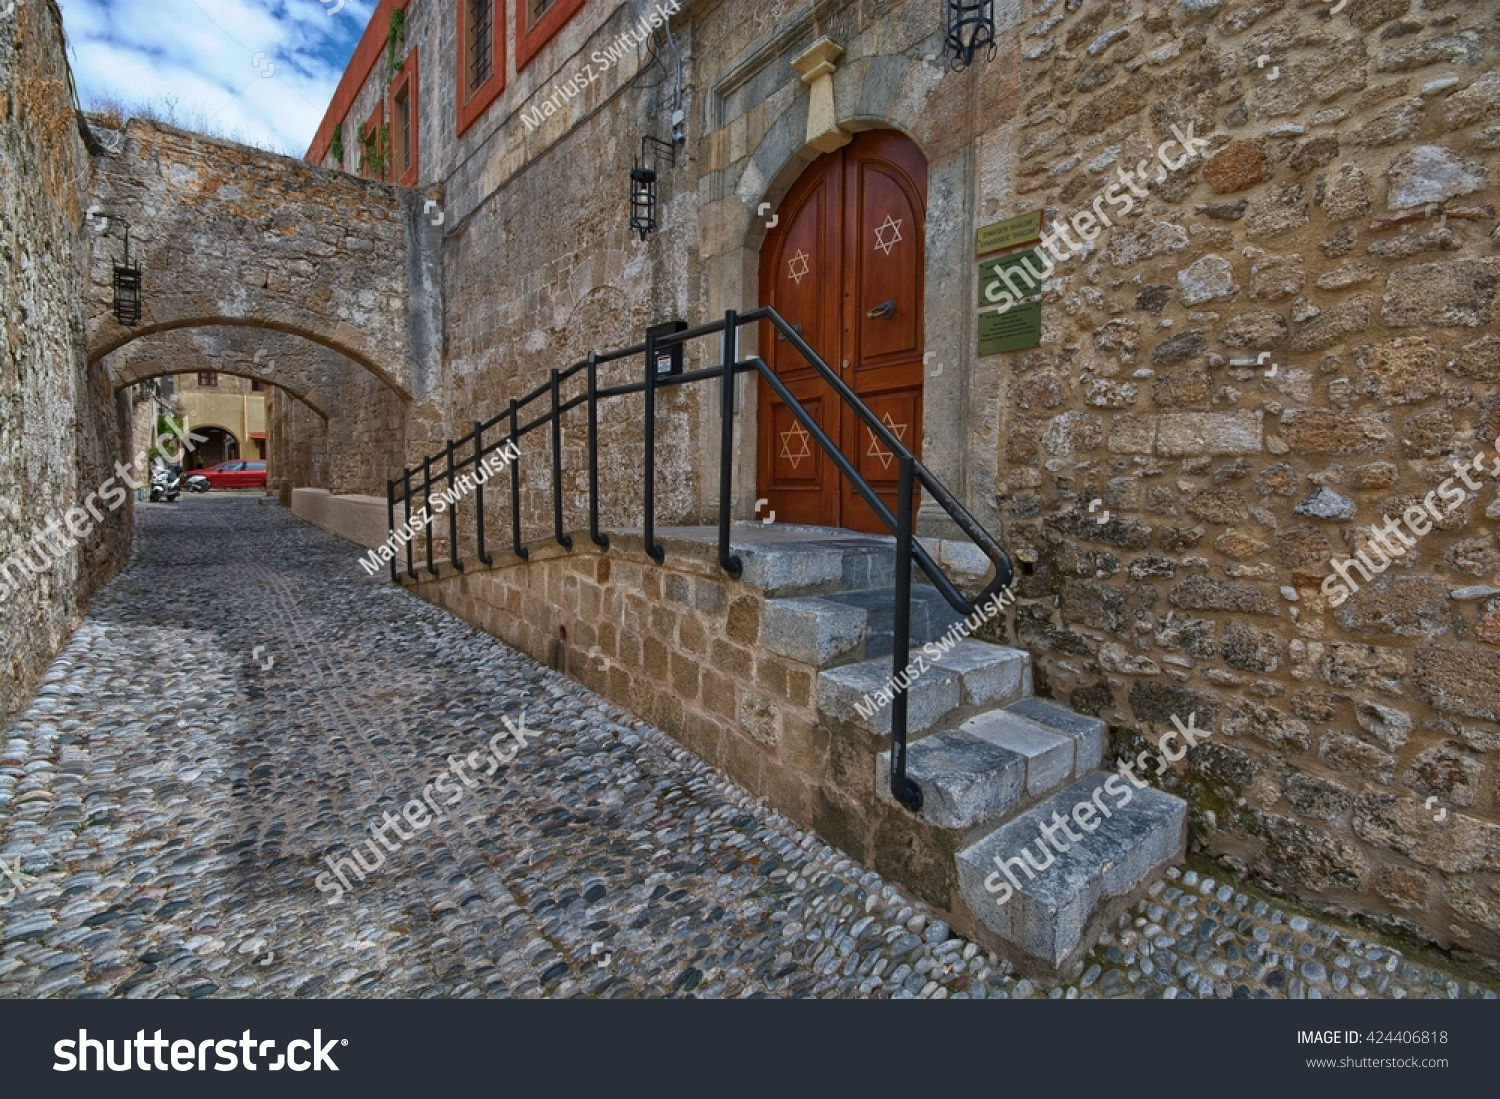 Rhodes Greece May 08 Entrance Kahal Stock Photo 424406818 - Shutterstock